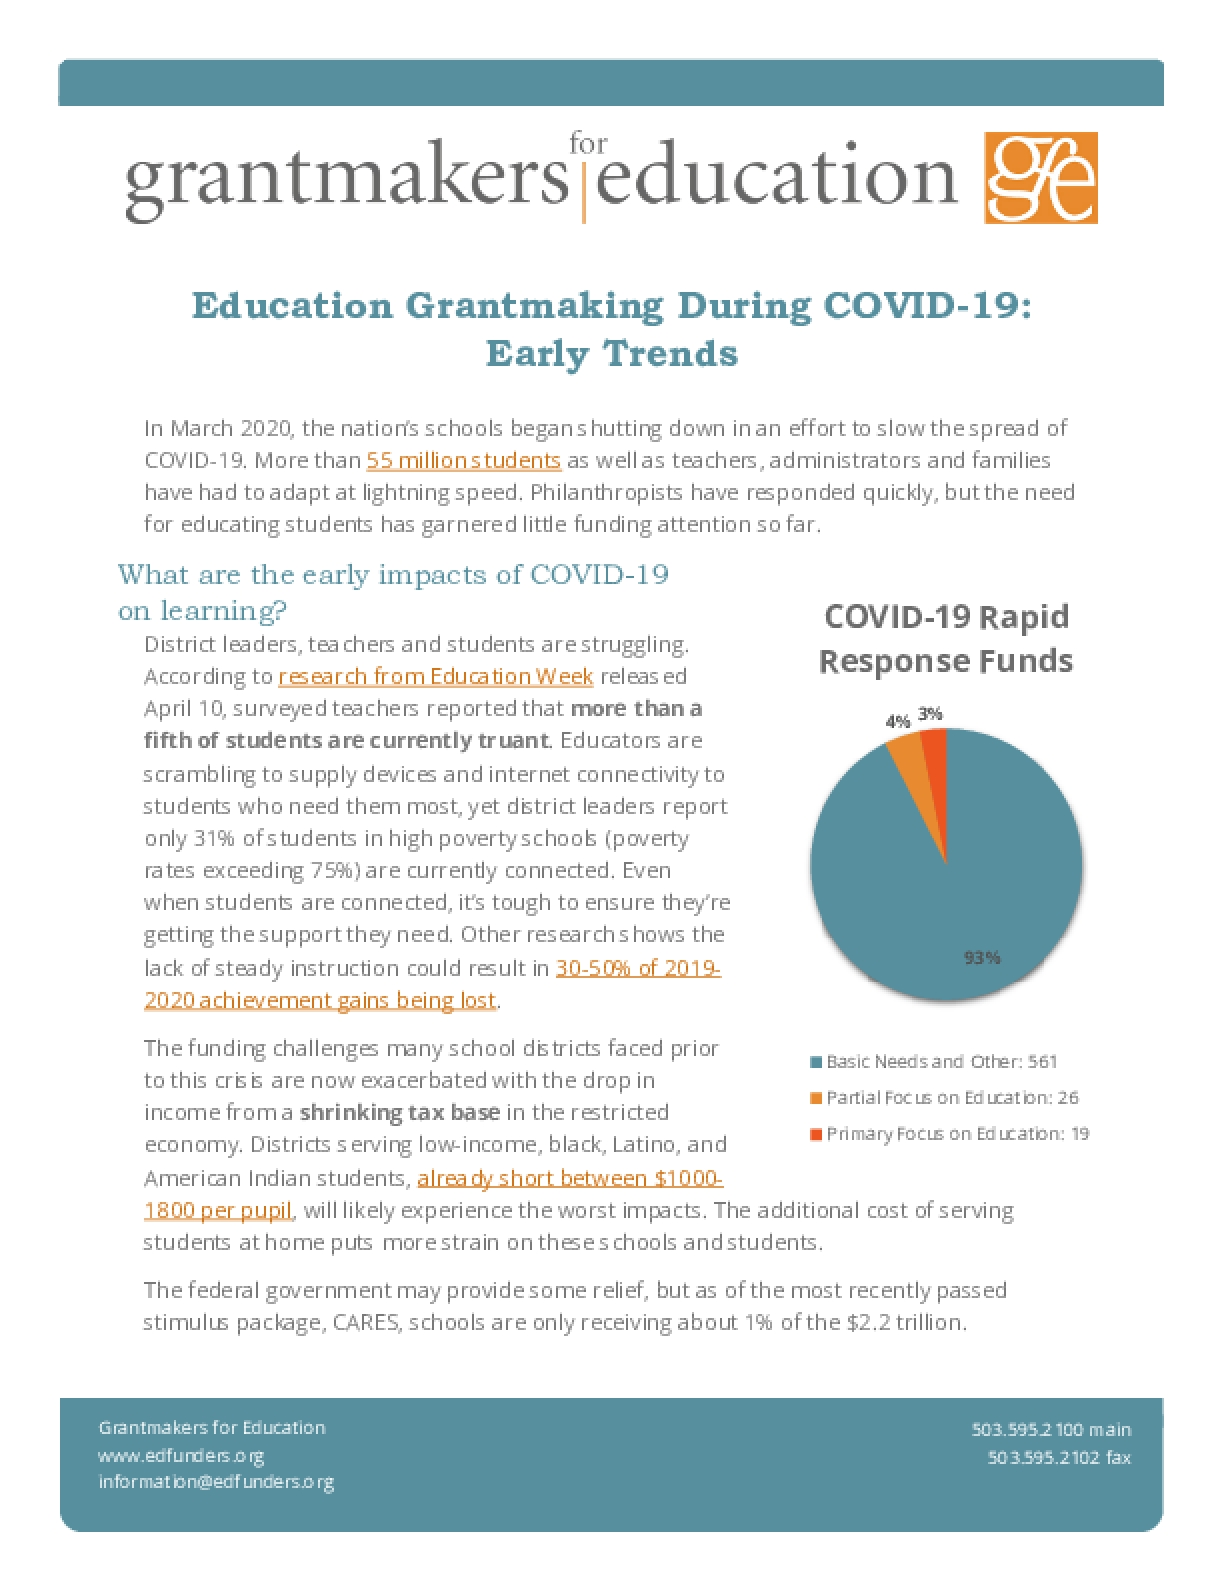 Education Grantmaking During COVID-19: Early Trends